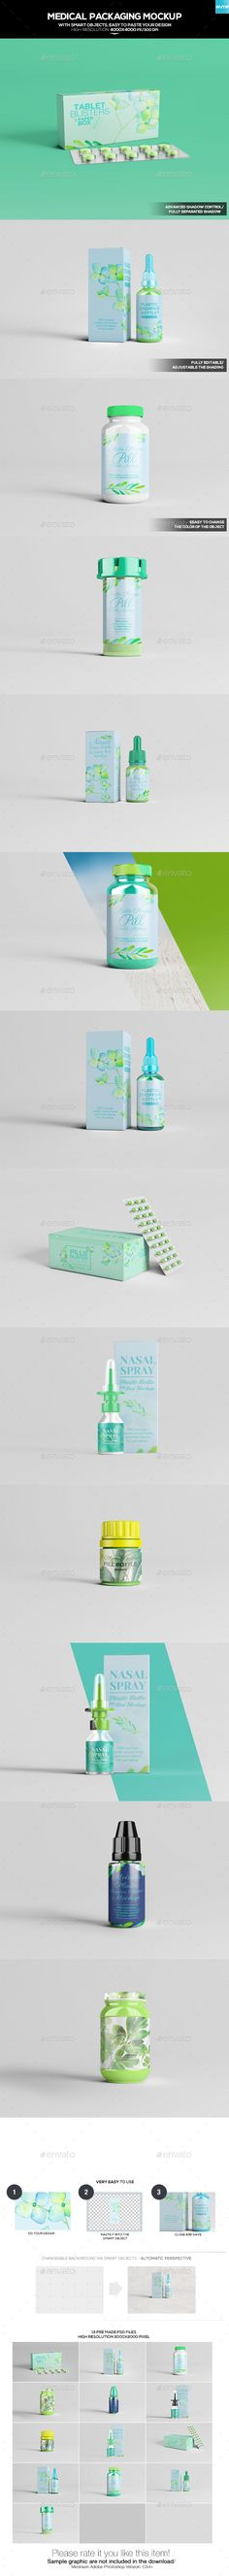 Medical Packaging Mockup by Wutip FeaturesWith smart objects, easyto paste your design13 Pre made psd files High resolution 4000x4000 pixel/300 DPI Changeable Backg